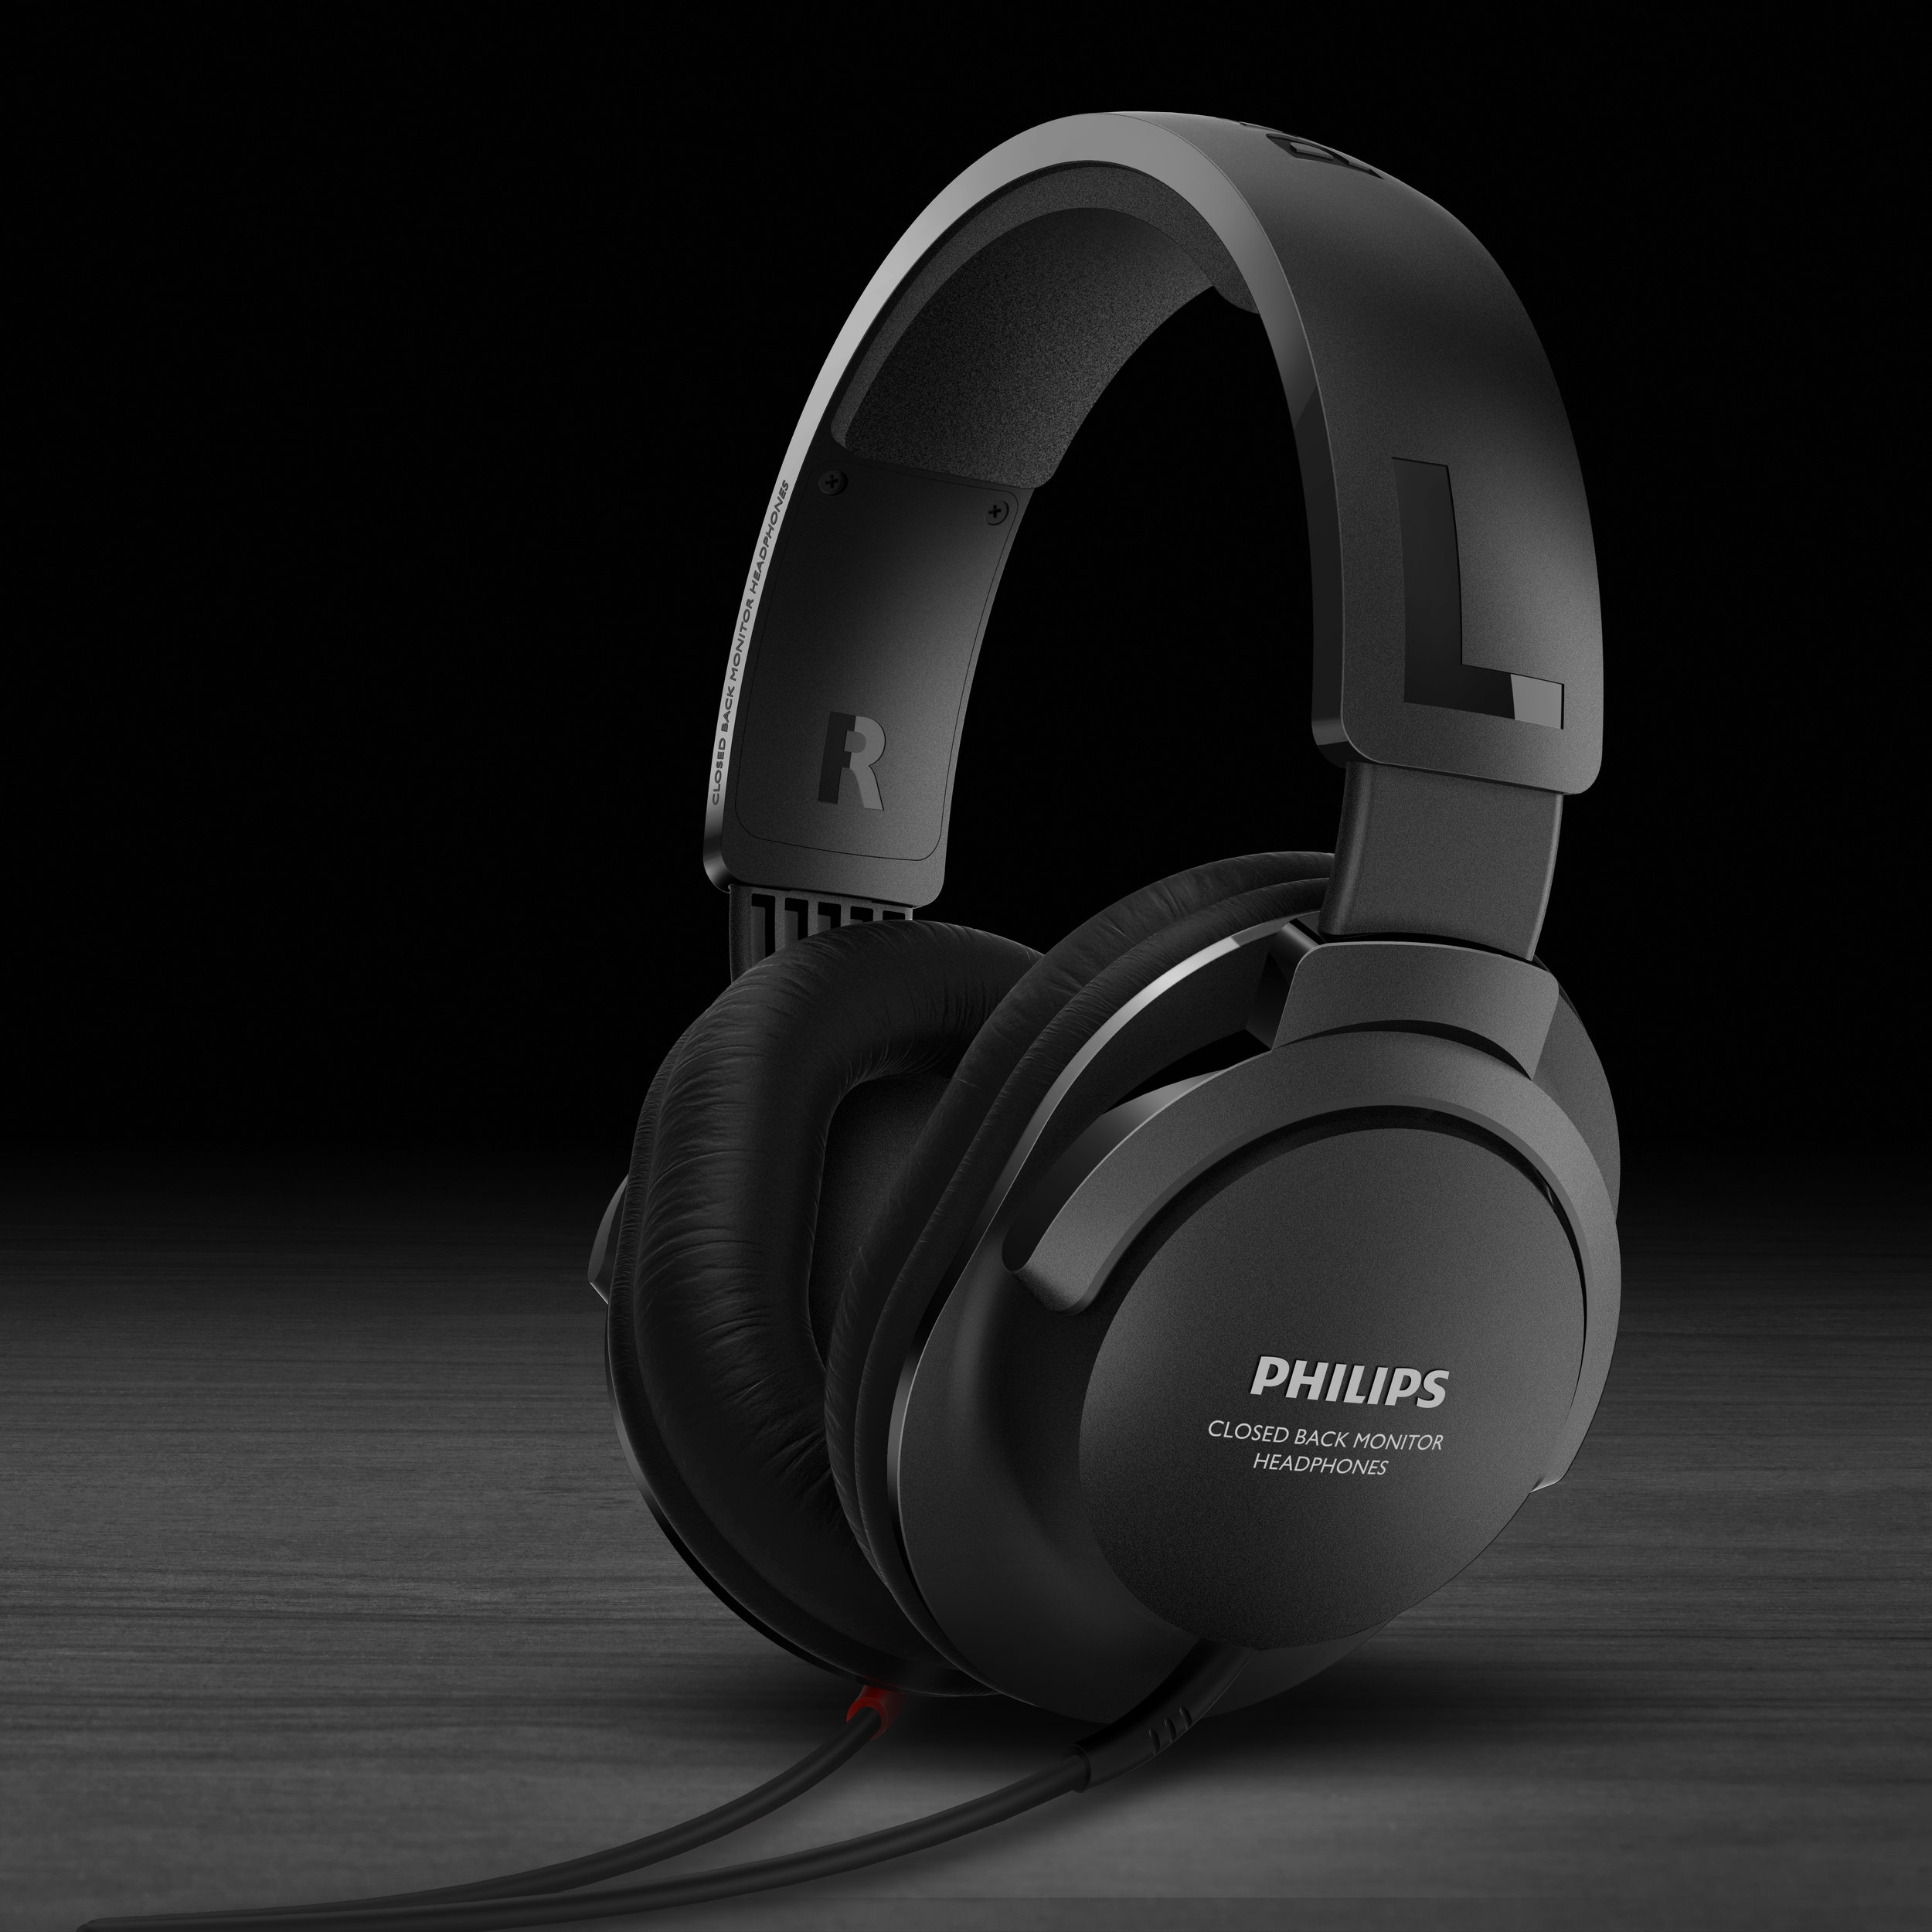 SHP2600 is an outdoor monitor type headphones, the contemporary design set a benchmark for the modern headphones design style.